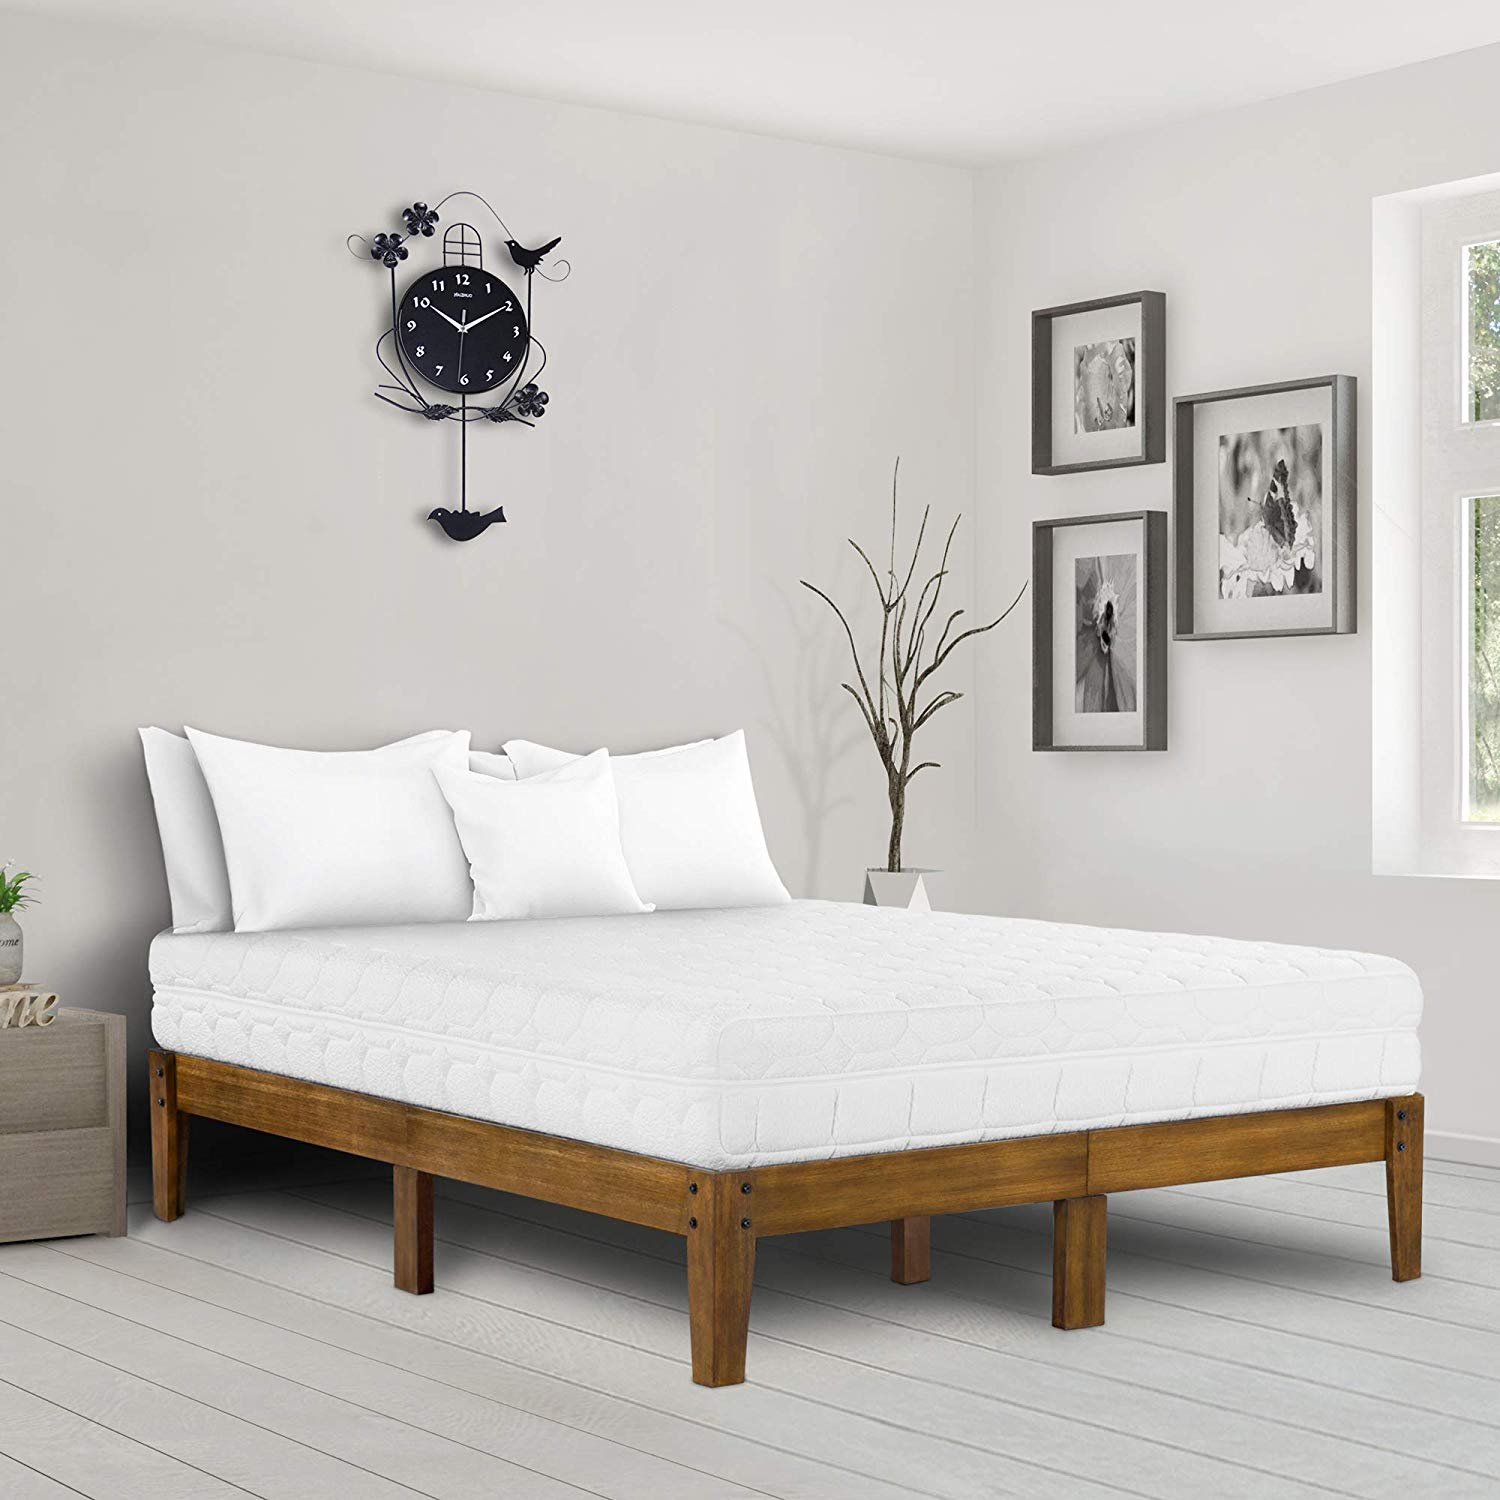 Ecos Living 14 Inch High Rustic Solid Wood Platform Bed